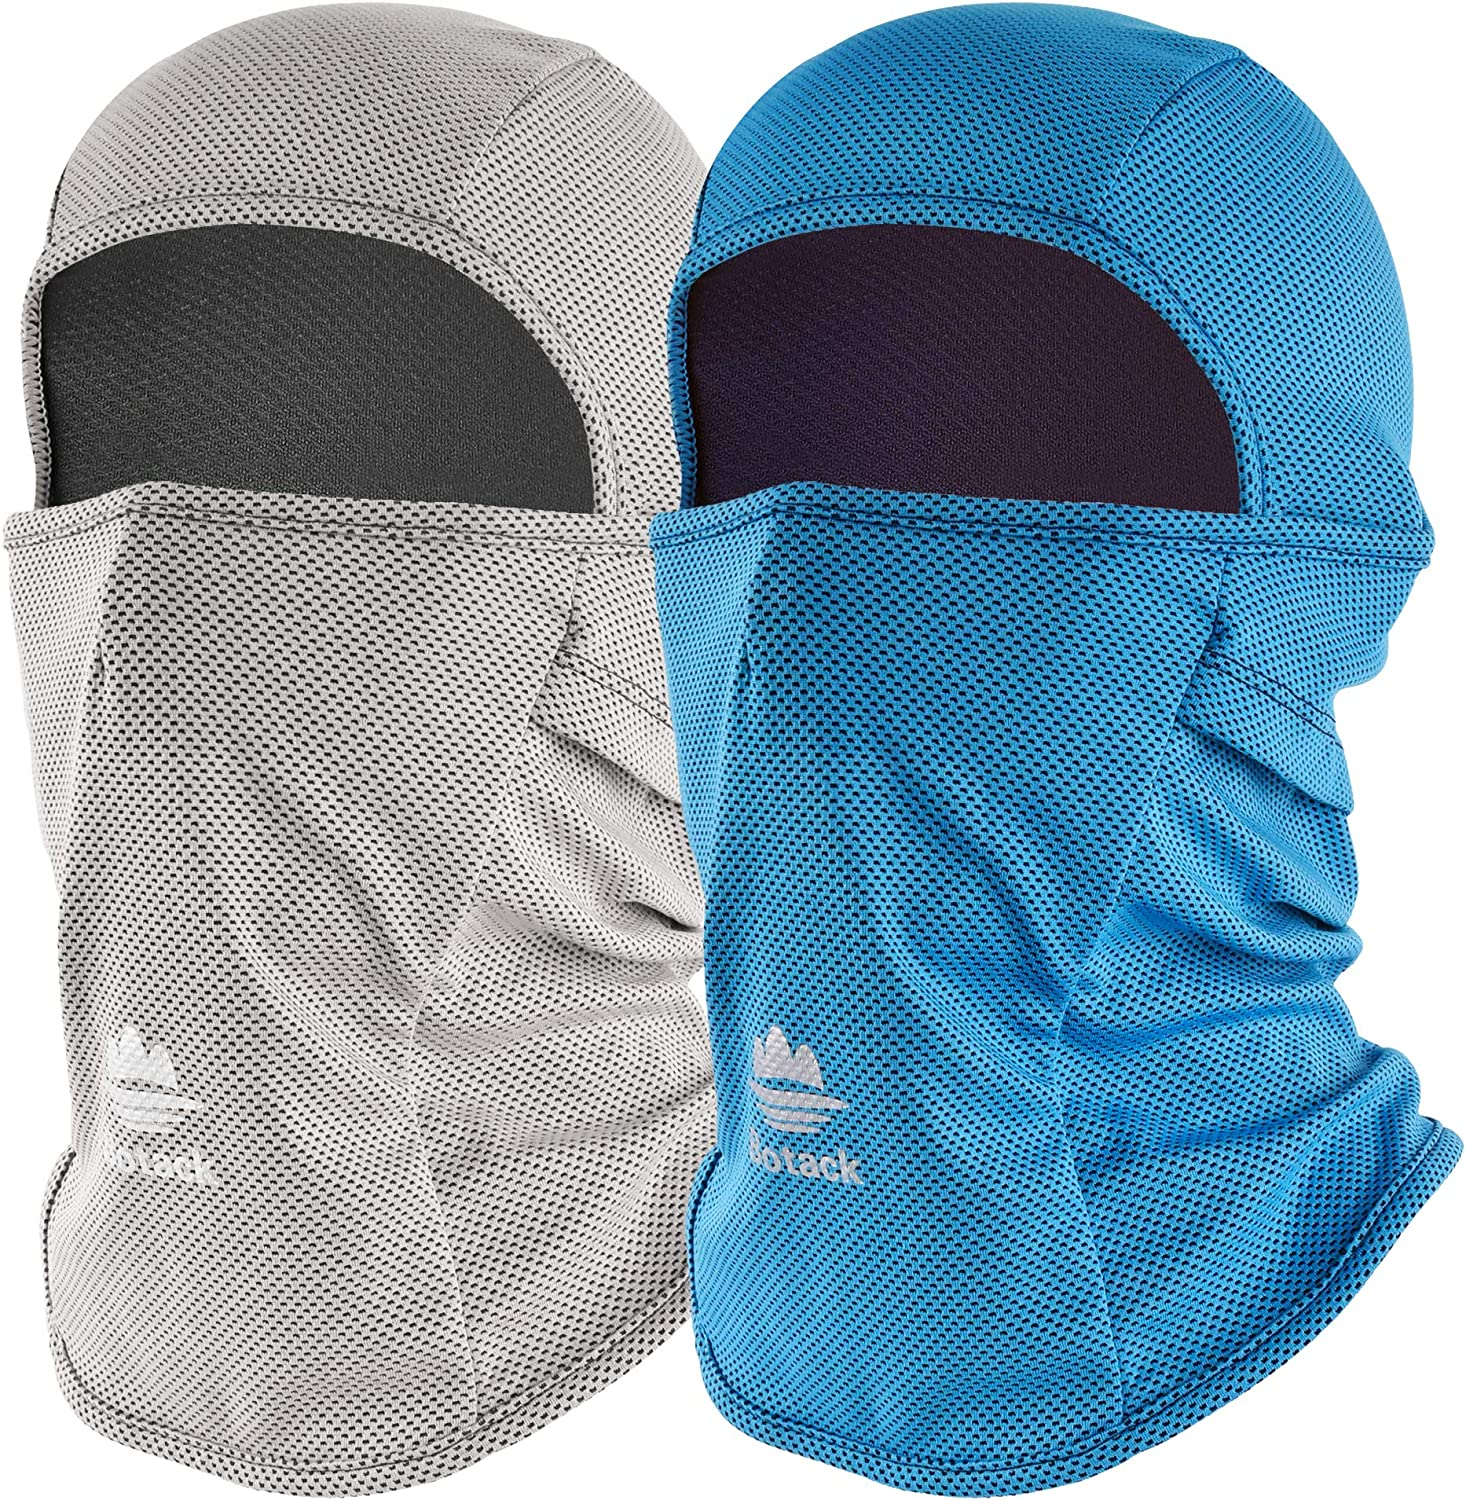 EXski Balaclava Face Mask Breathable Sun Protection Cooling for Cycling Running Men Women